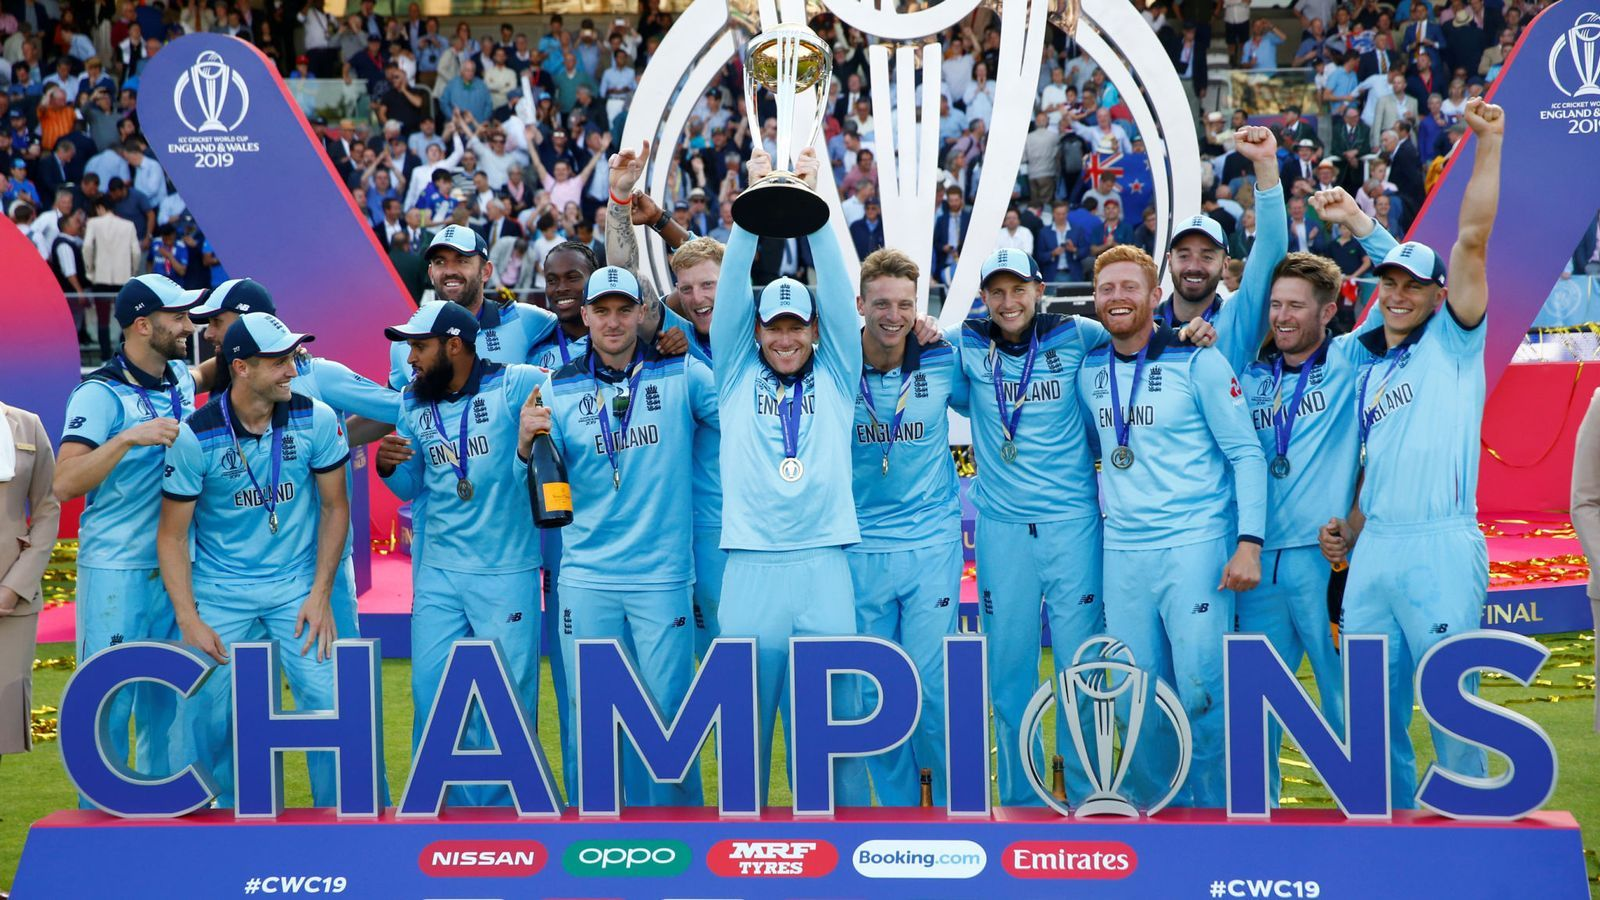 England S Cricket World Cup Winners Hailed Heroes As They Celebrate Historic Victory Cricket World Cup World Cup Winners Cricket World Cup Winners